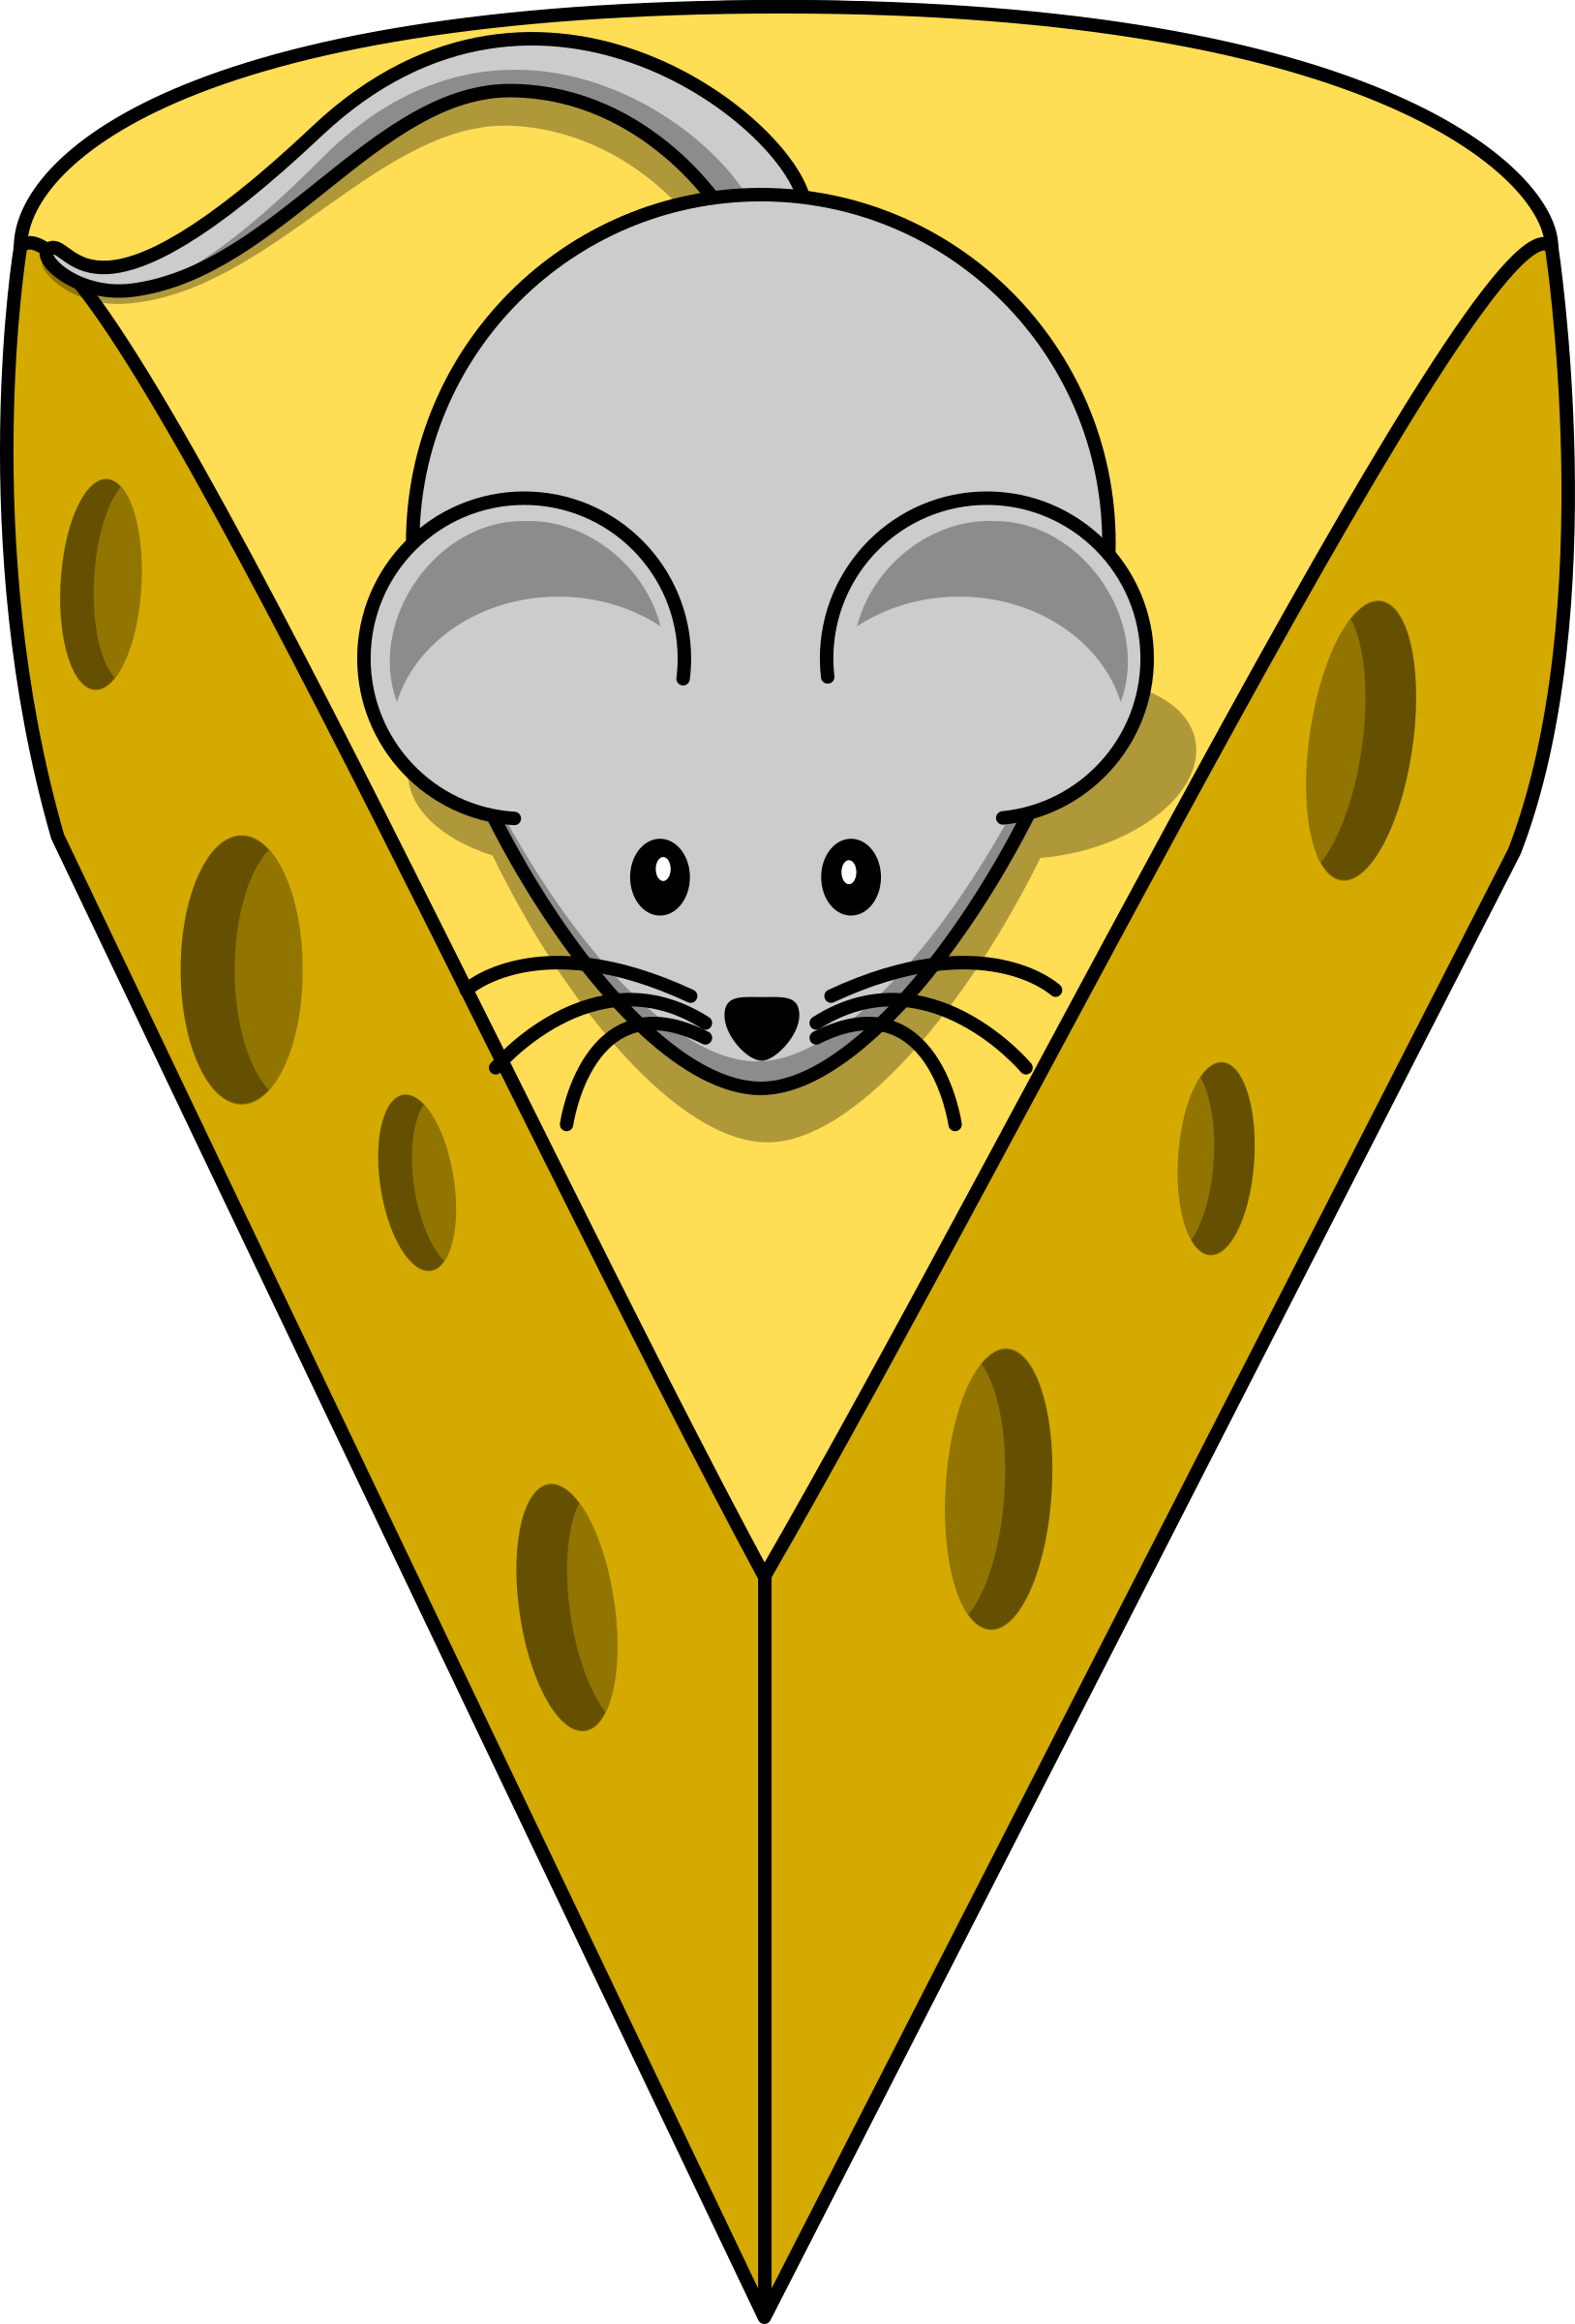 Cartoon cheese png. Mouse on top of